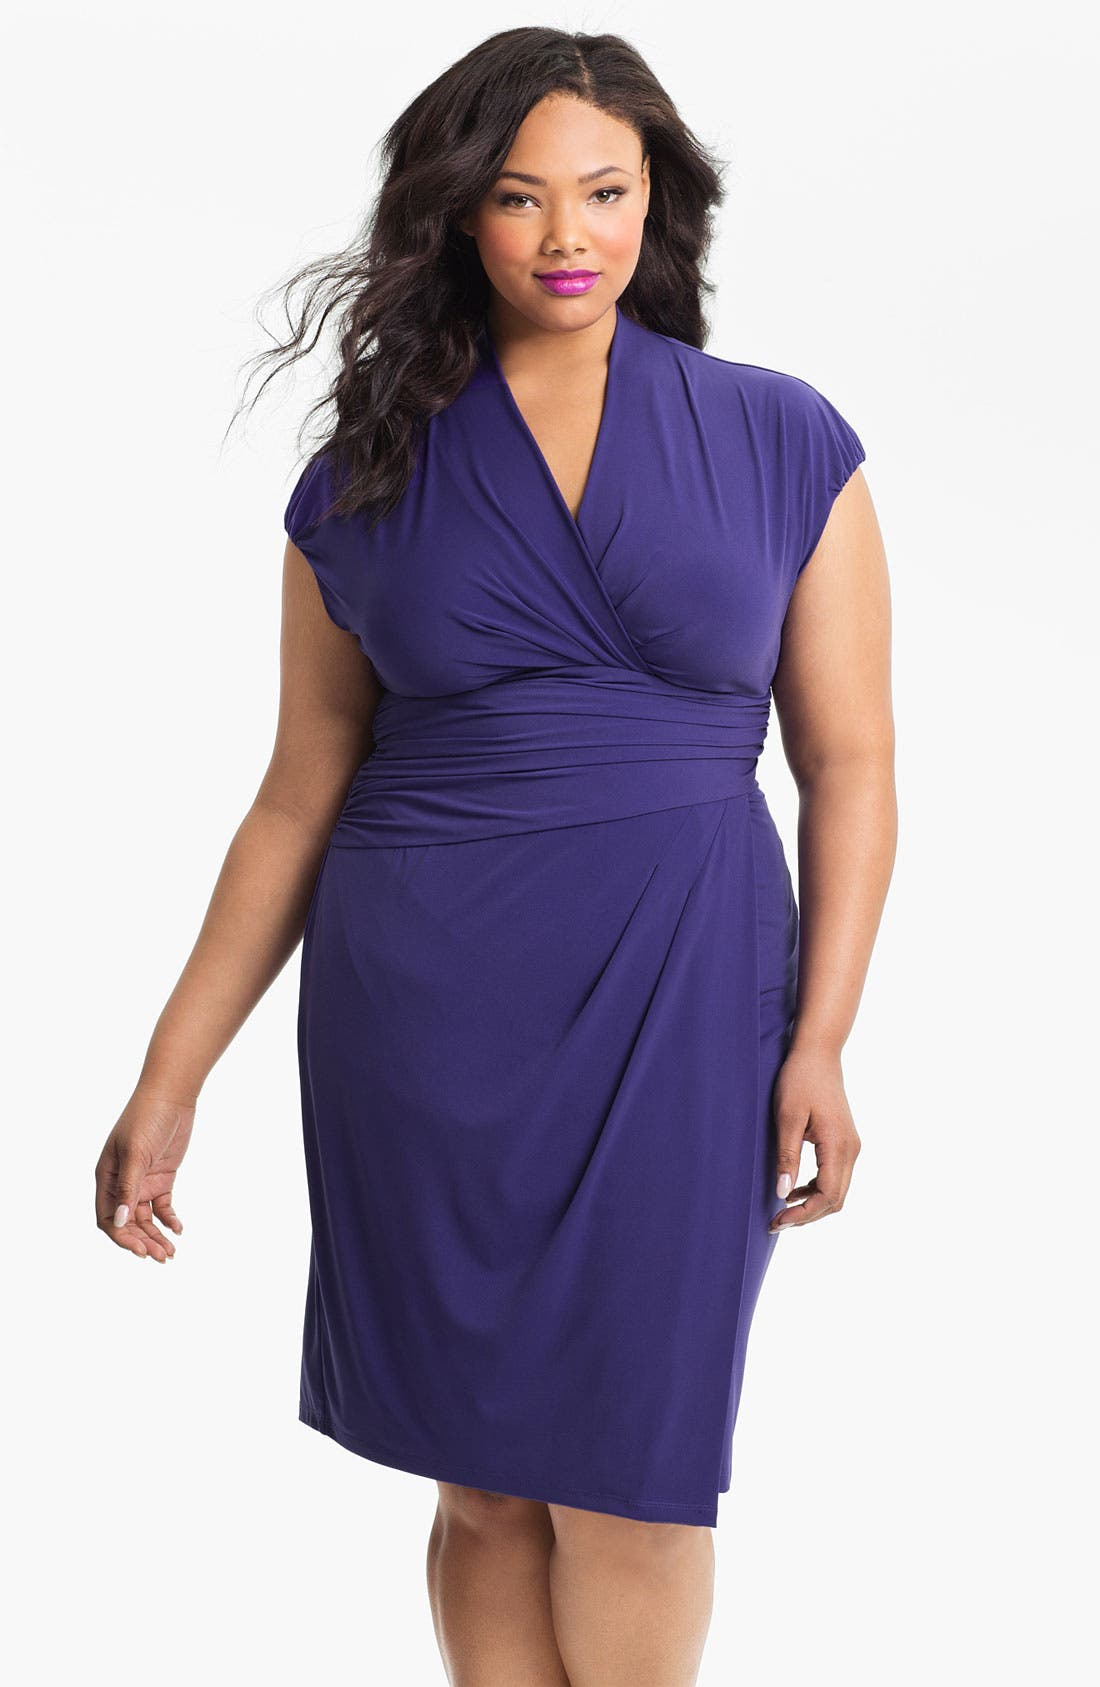 Alternate Image 1 Selected - Suzi Chin for Maggy Boutique Jersey Knit Dress (Plus Size)